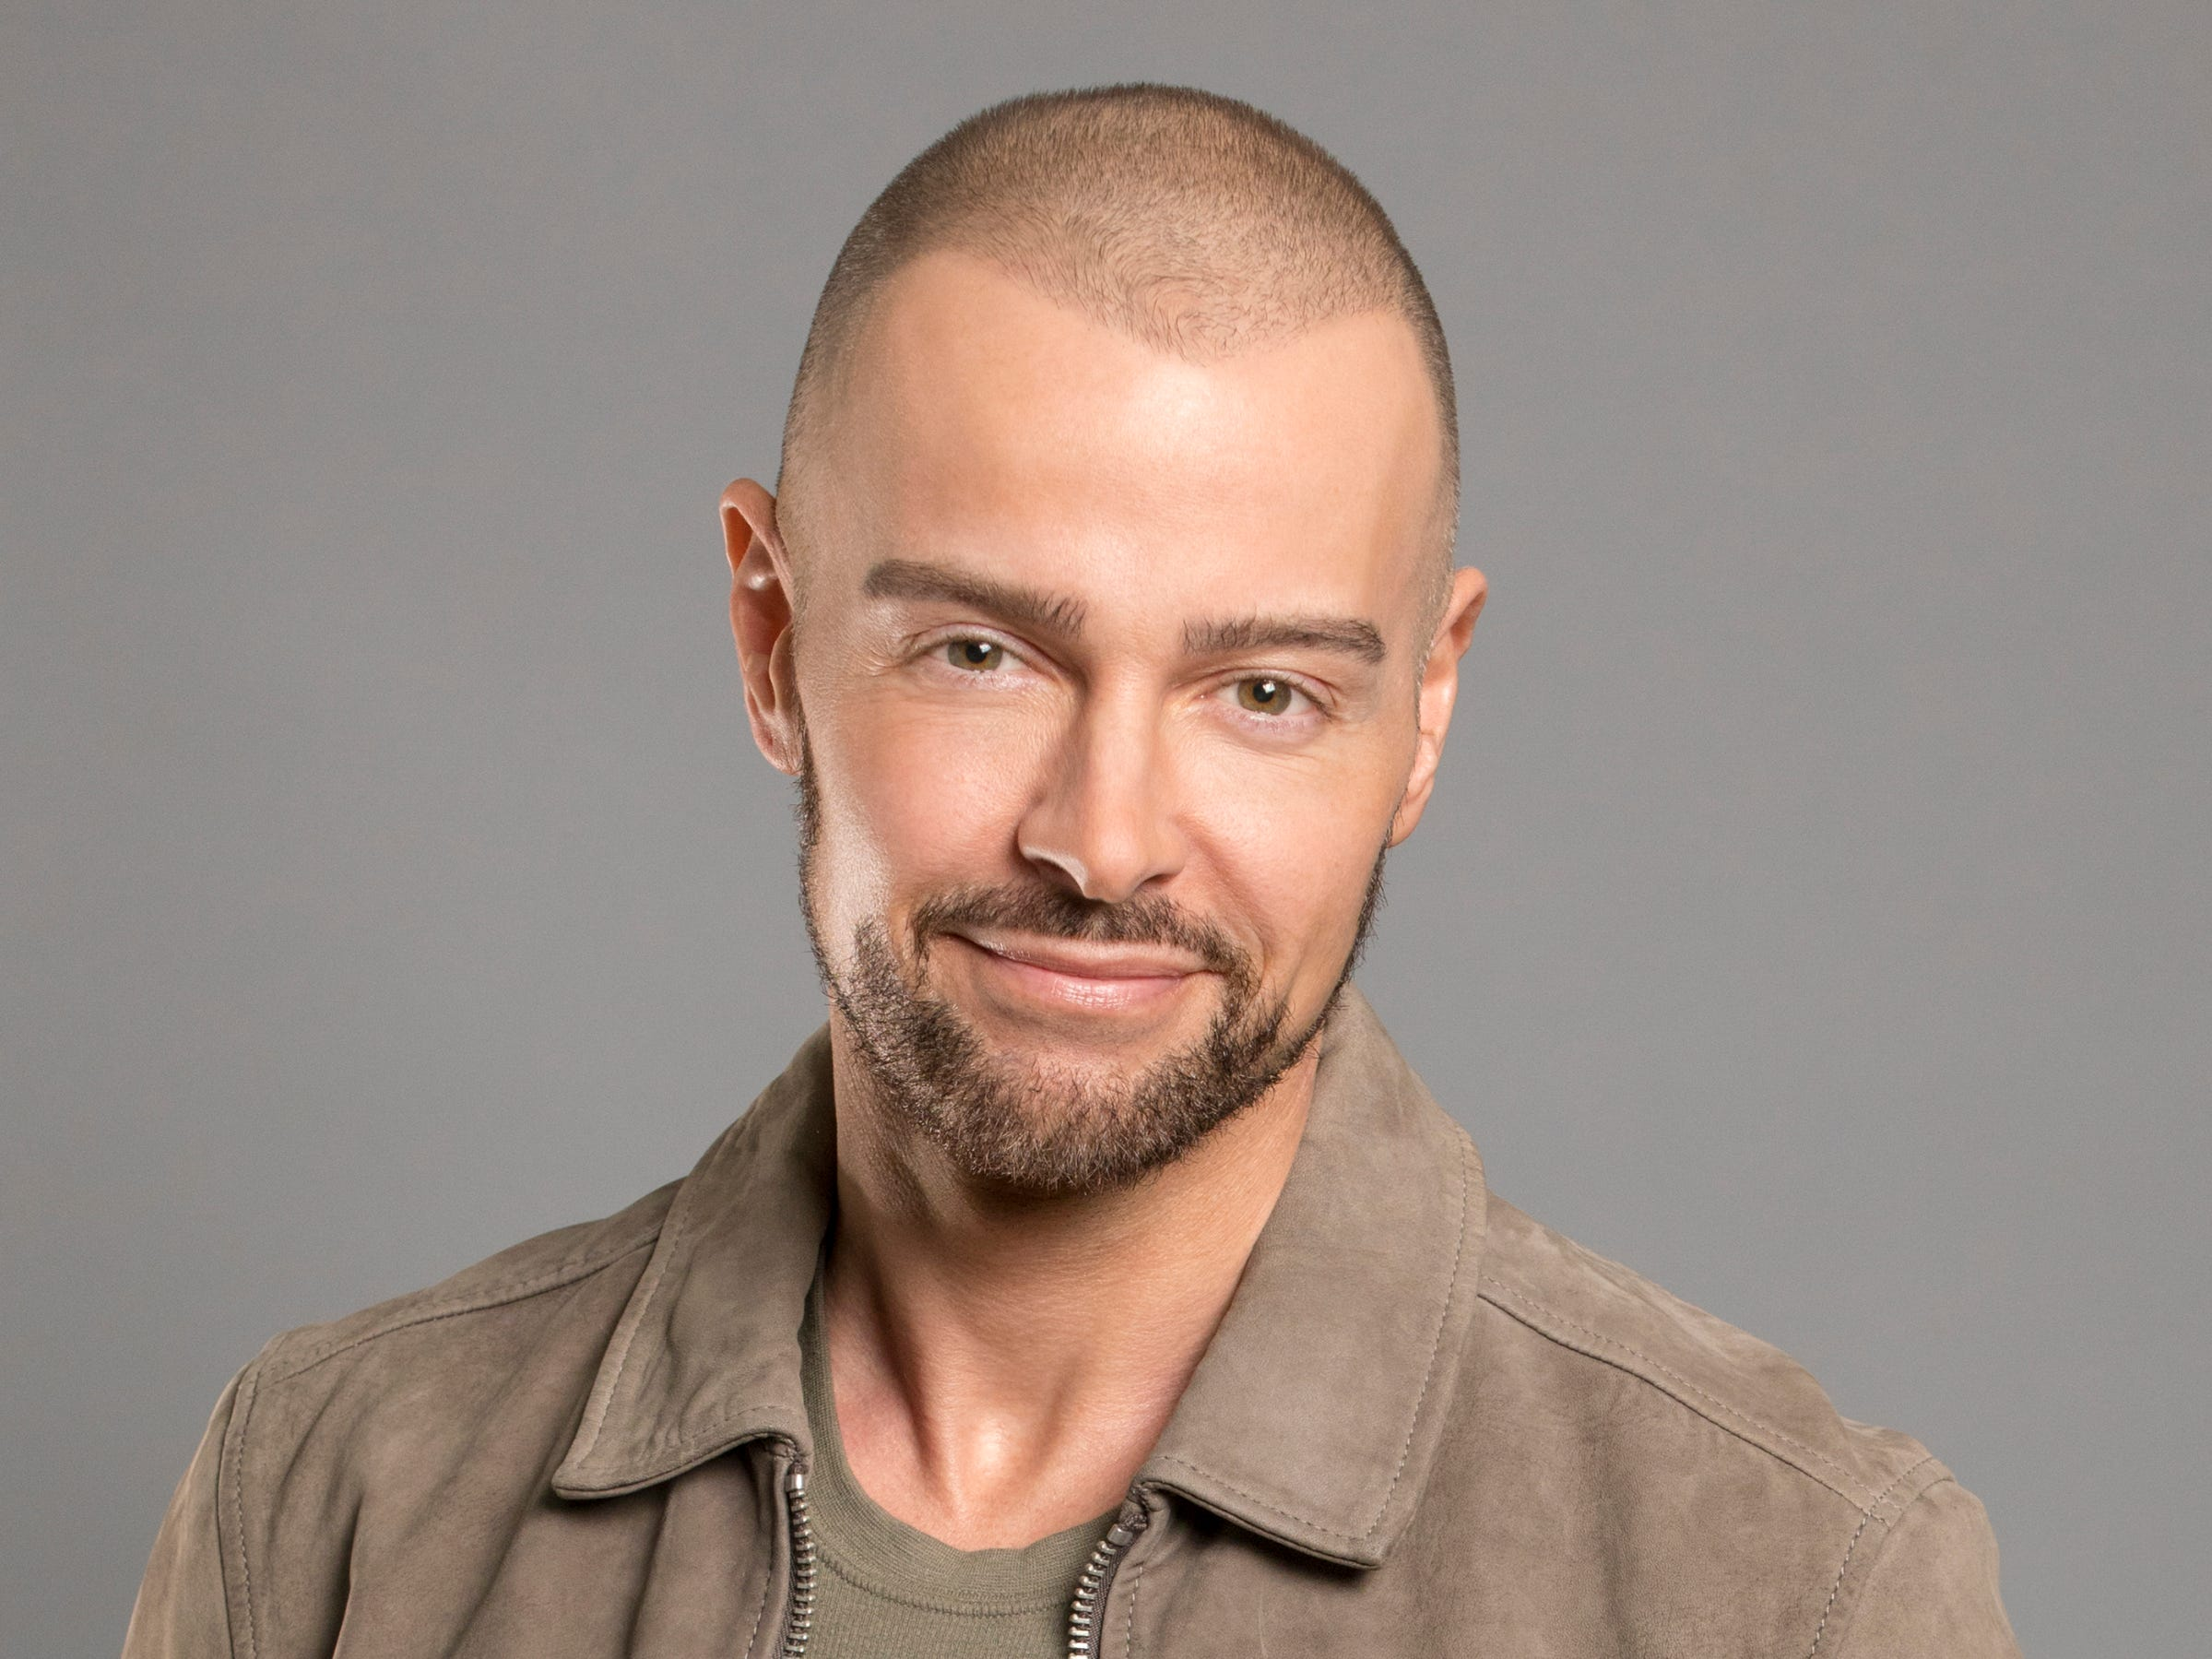 Joey Lawrence to participate in the second season of BIG BROTHER: CELEBRITY EDITION. BIG BROTHER: CELEBRITY EDITION launches with a two-night premiere event Monday, Jan. 21 (8:00-9:00 PM, ET/PT) and Tuesday, Jan. 22 (8:00-9:00 PM, ET/PT) on the CBS Television Network.   Photo: Monty Brinton/CBS  ©2019 CBS Broadcasting, Inc. All Rights Reserved